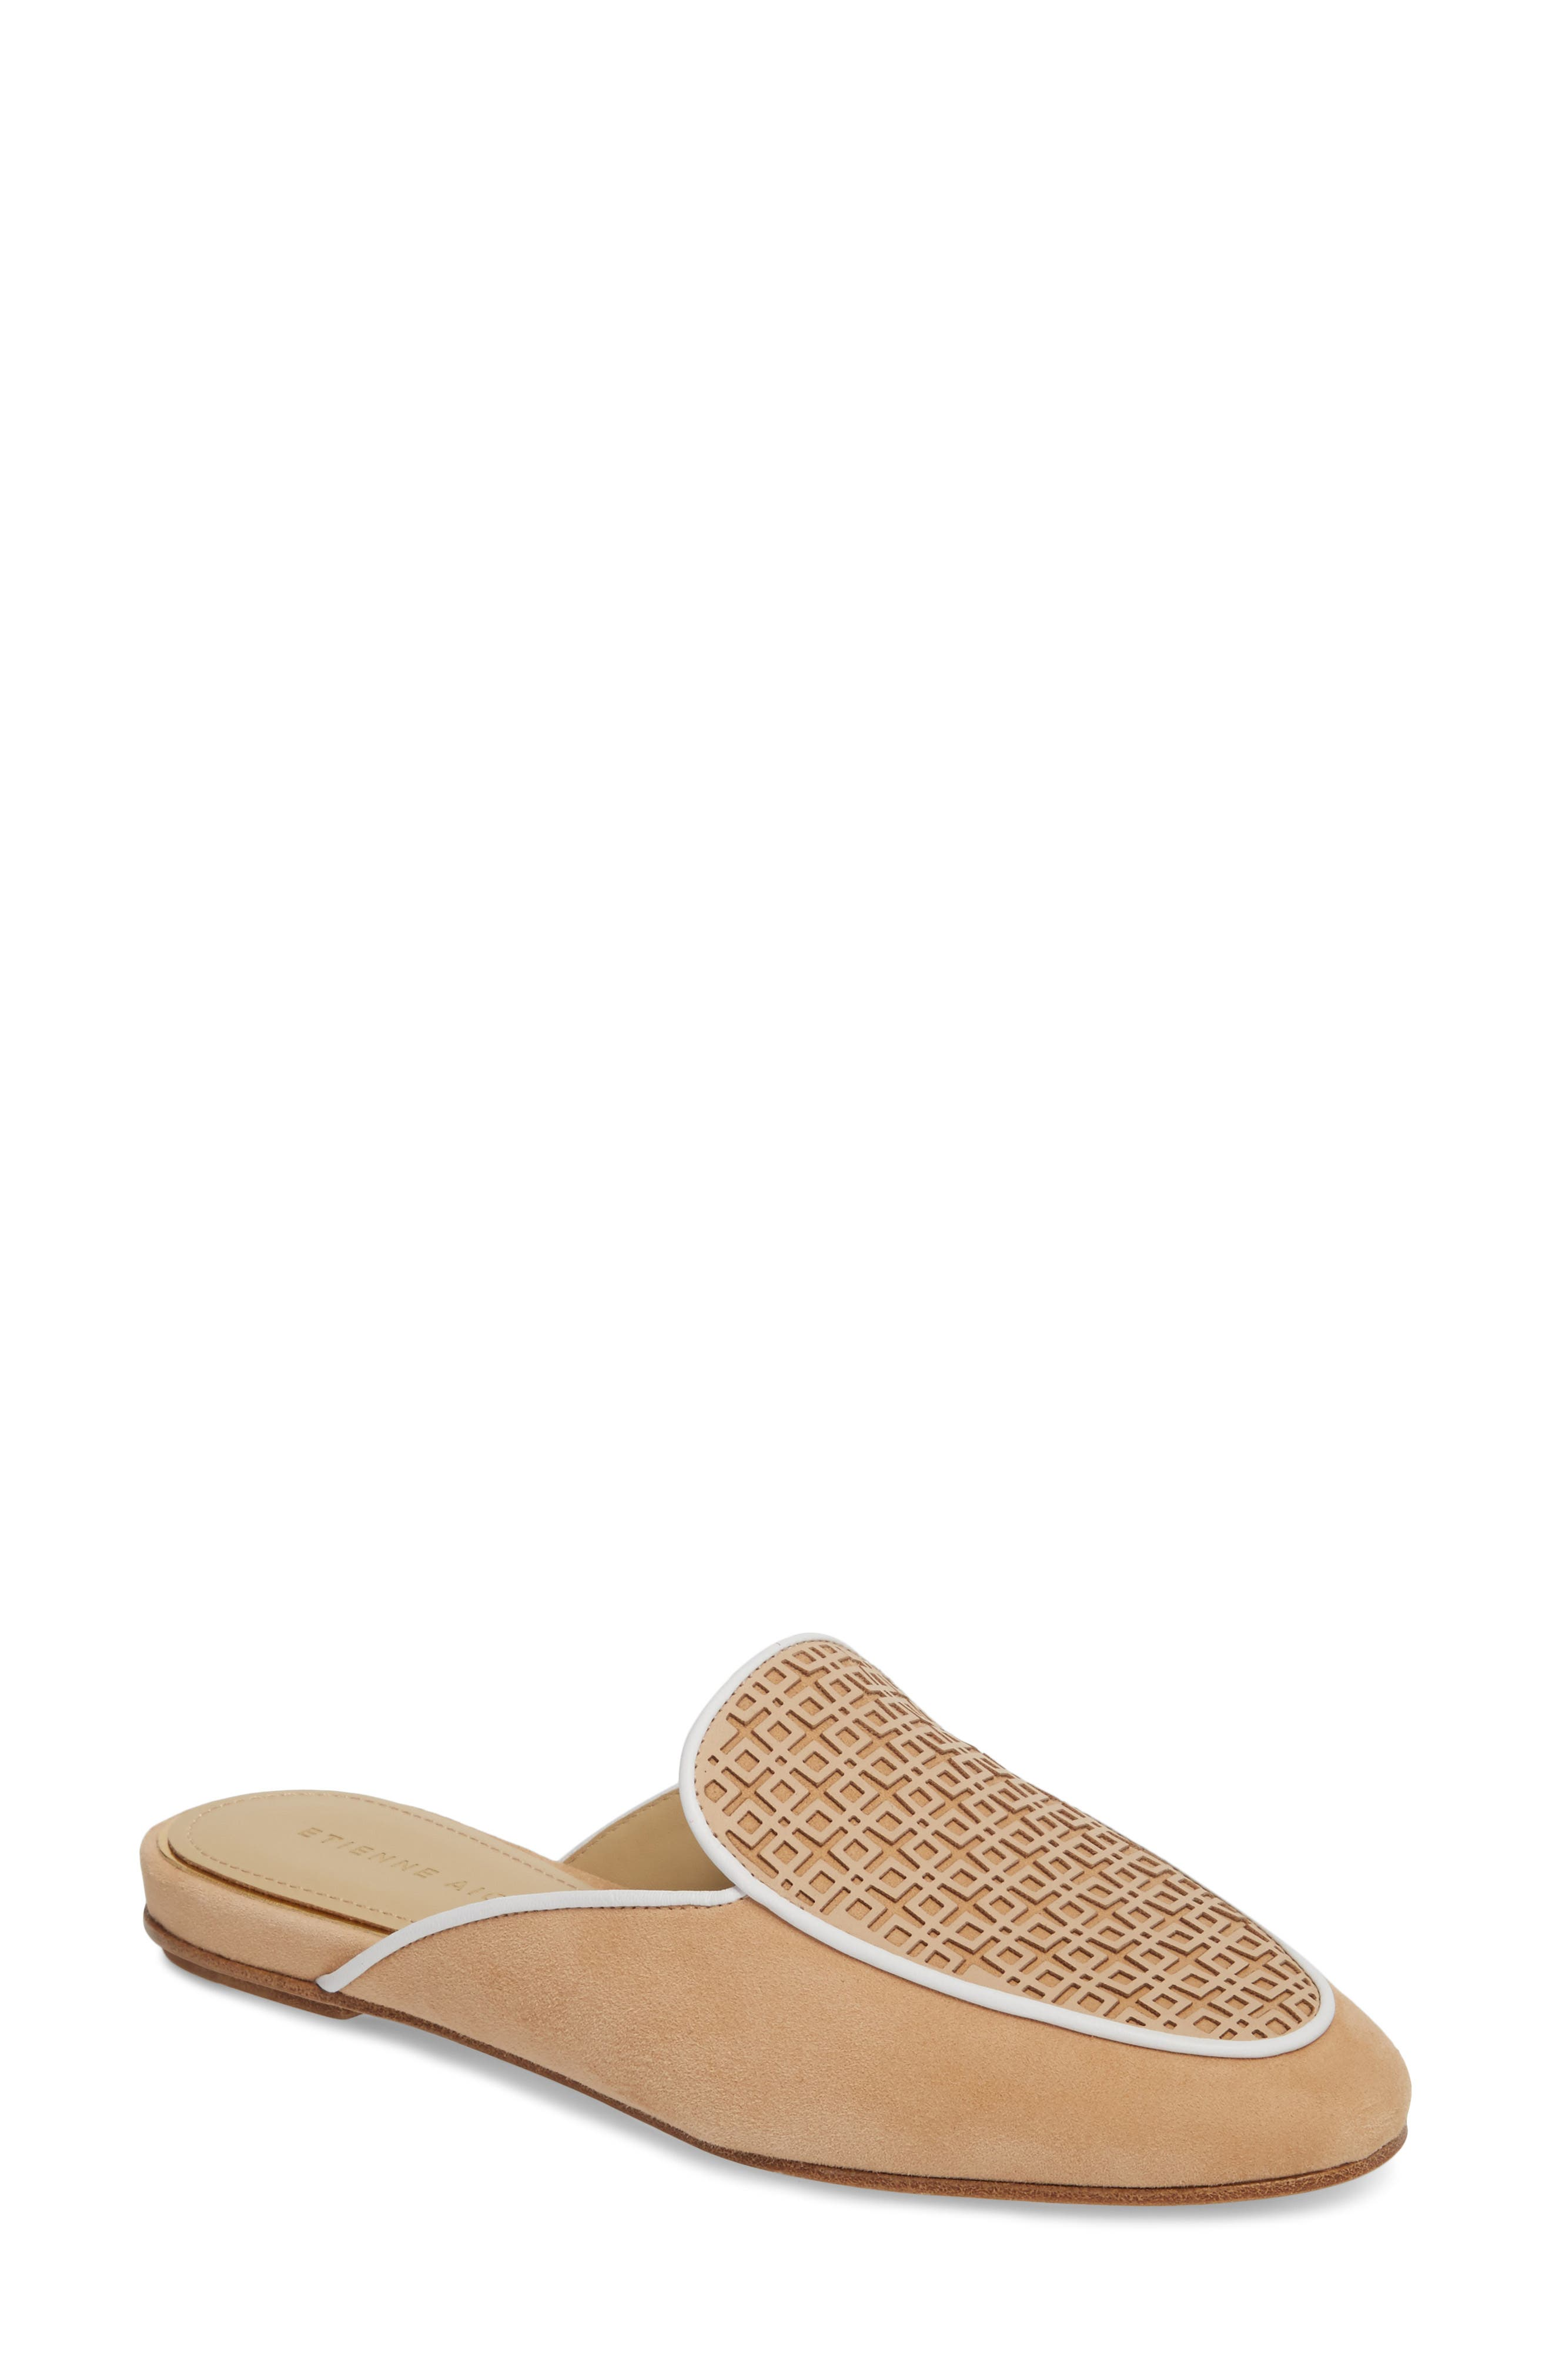 Caymen Mule,                         Main,                         color, NATURAL/ FAWN/ WHITE